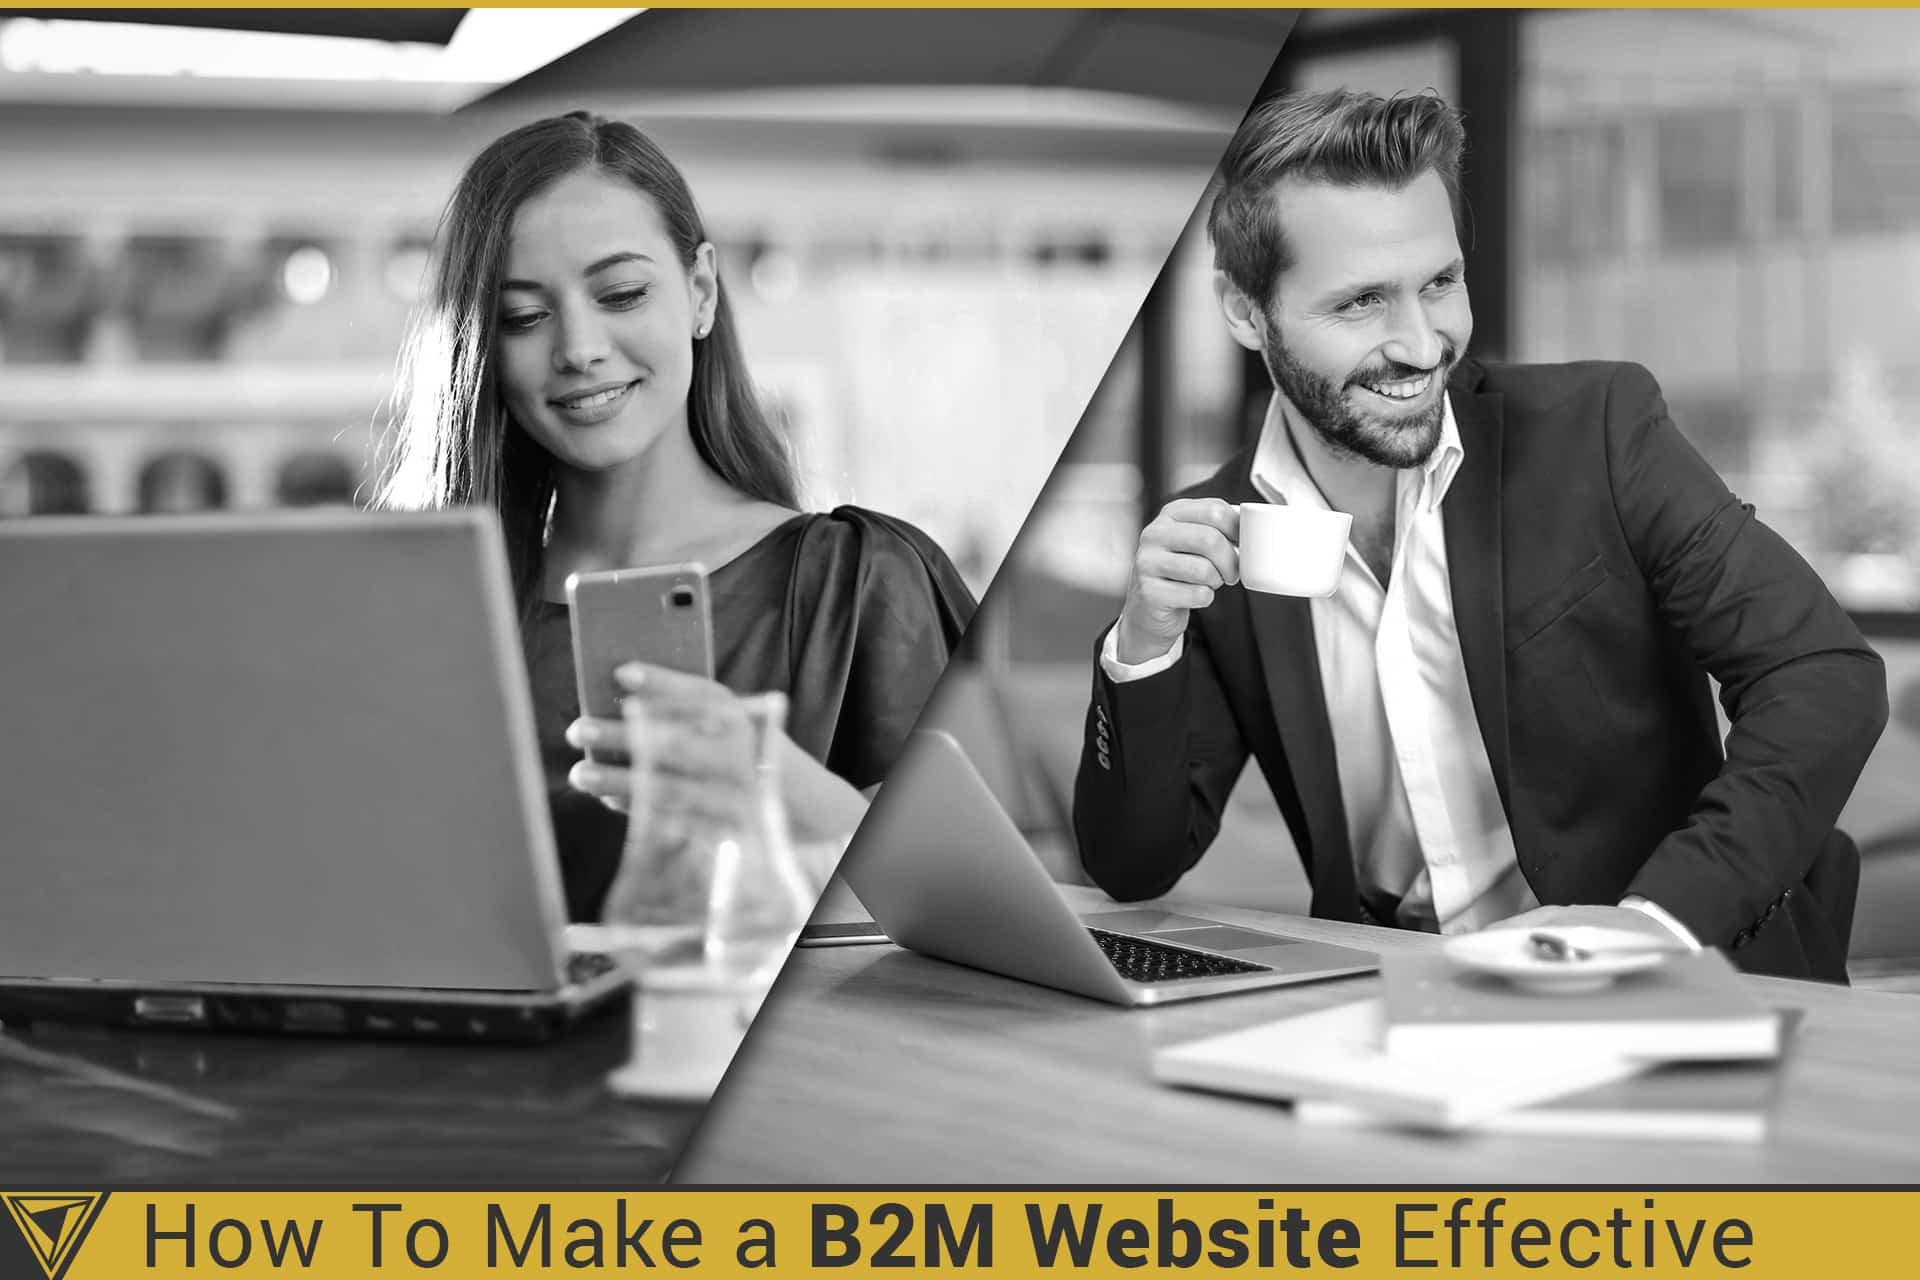 Tips To Make a B2M Website Work Well